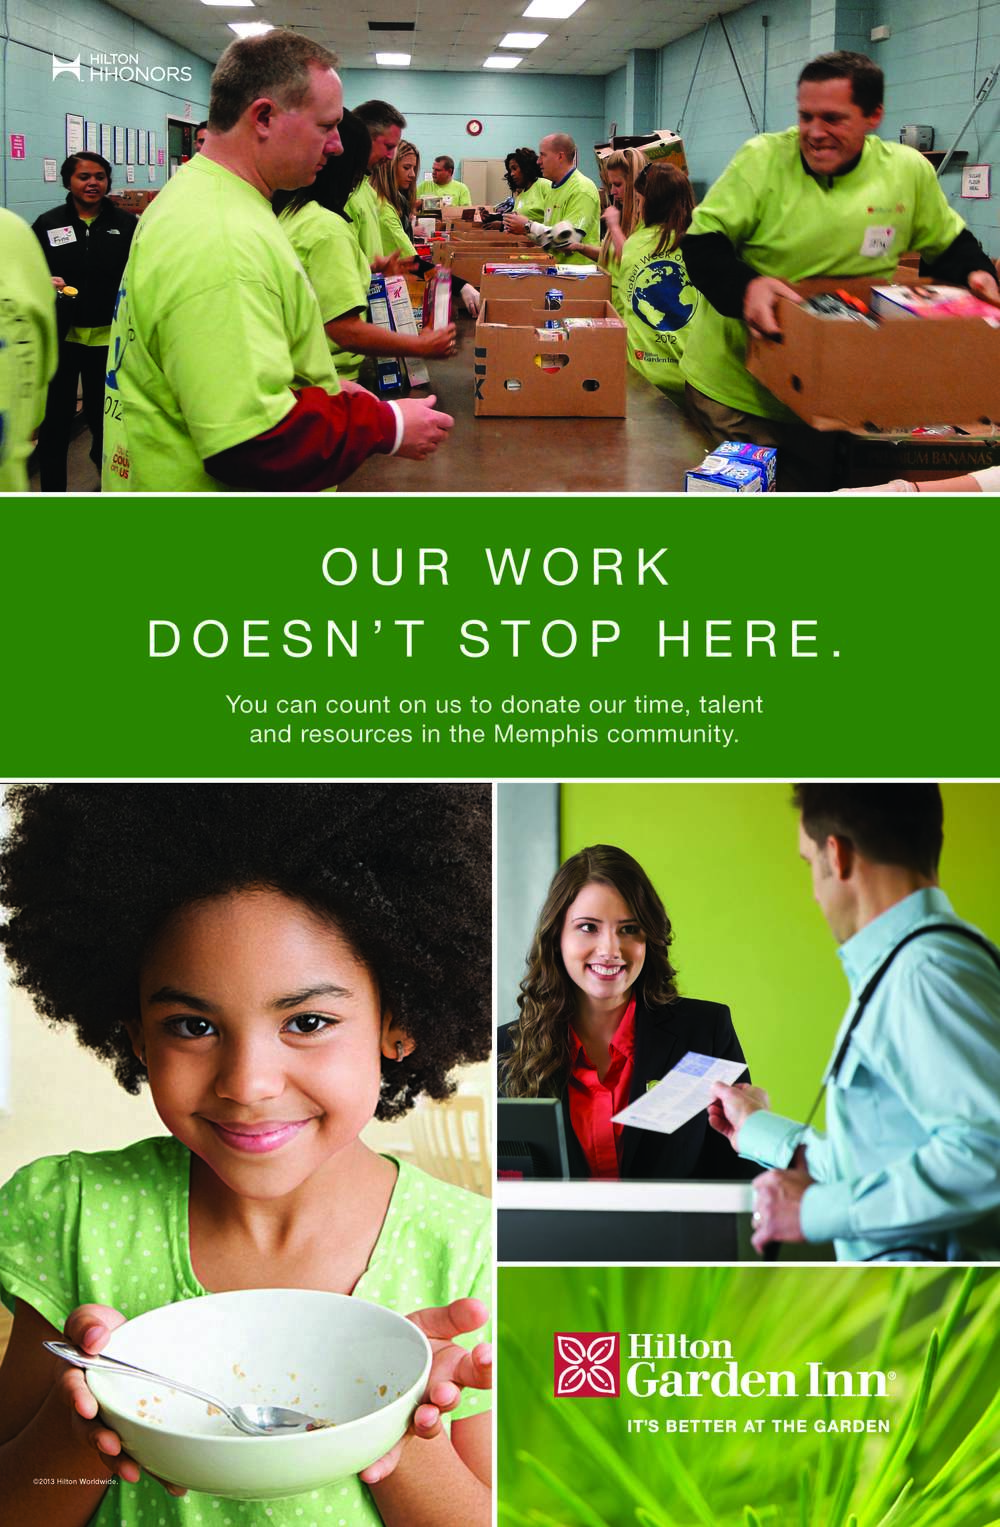 HILT0603_H_2013Posters_OurWork (Time to HILT0609)_Mechanical_HILT0603_H_2013Posters_OurWork_R3 (1).jpg